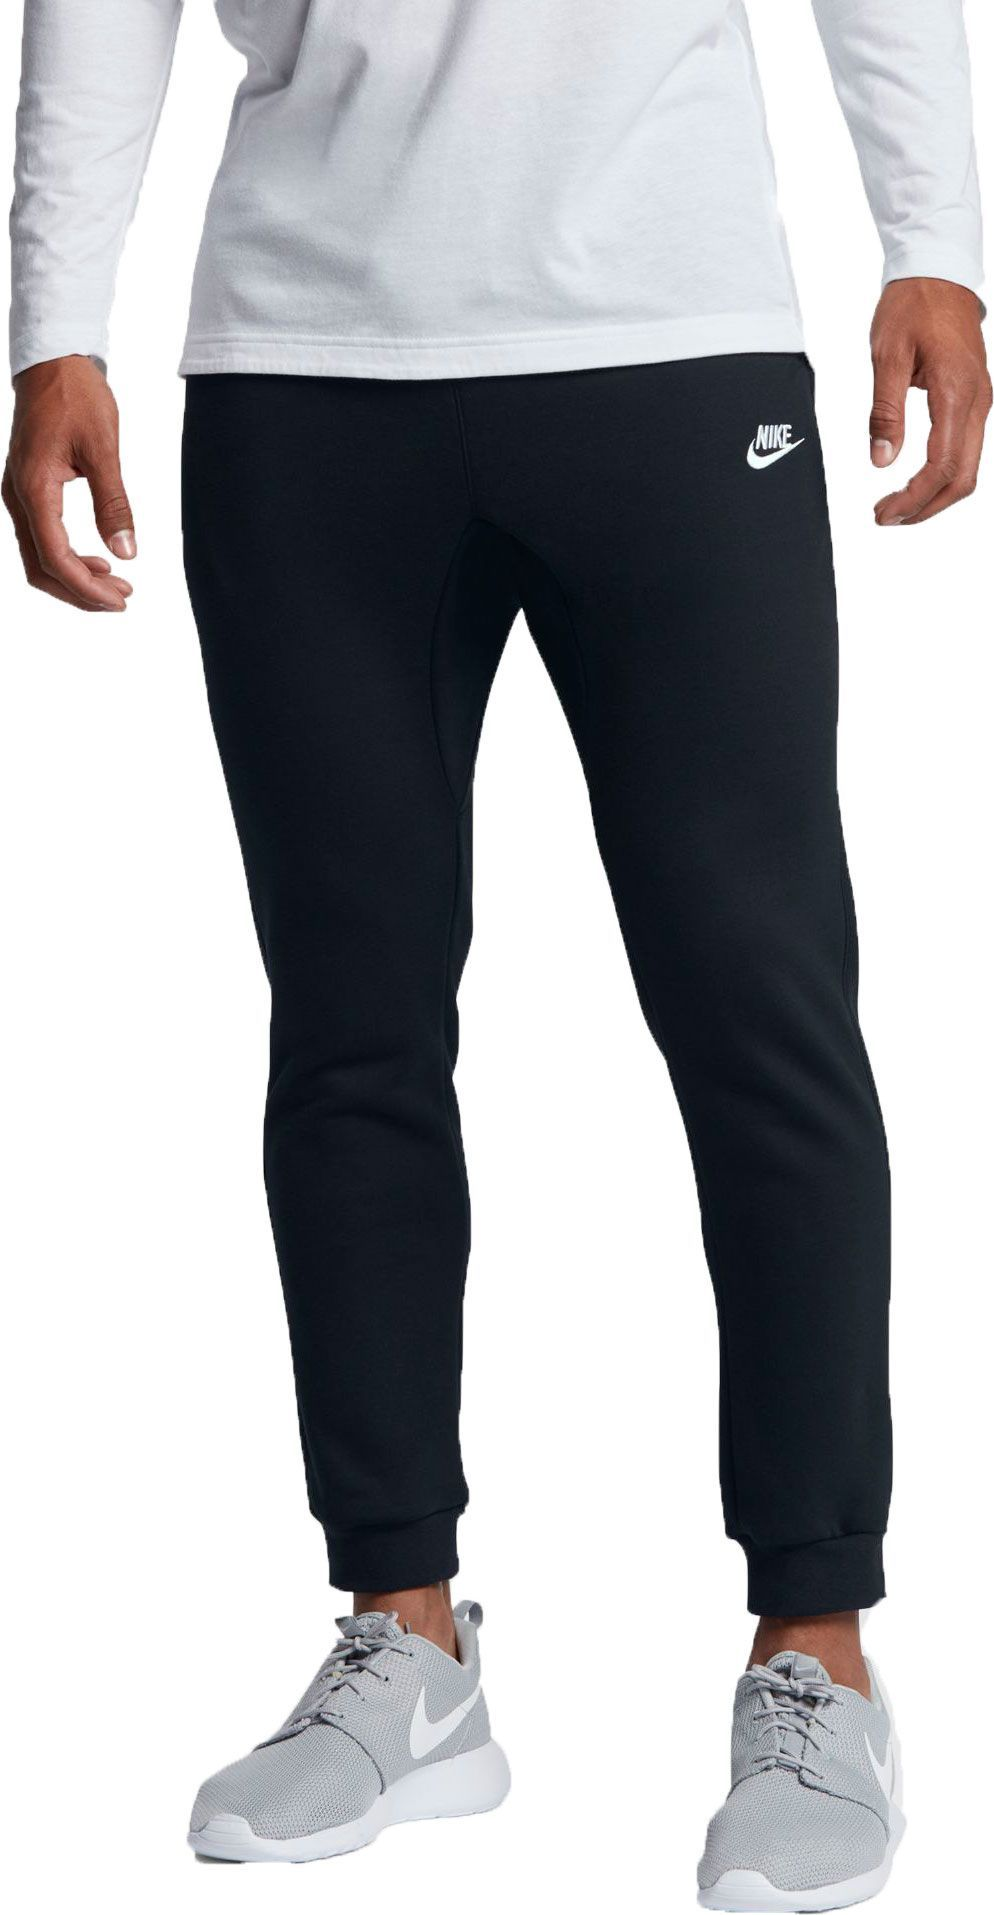 reputable site 27675 7317f Nike Men s Sportswear Club Fleece Joggers   DICK S Sporting  GoodsProposition 65 warning iconProposition 65 warning icon